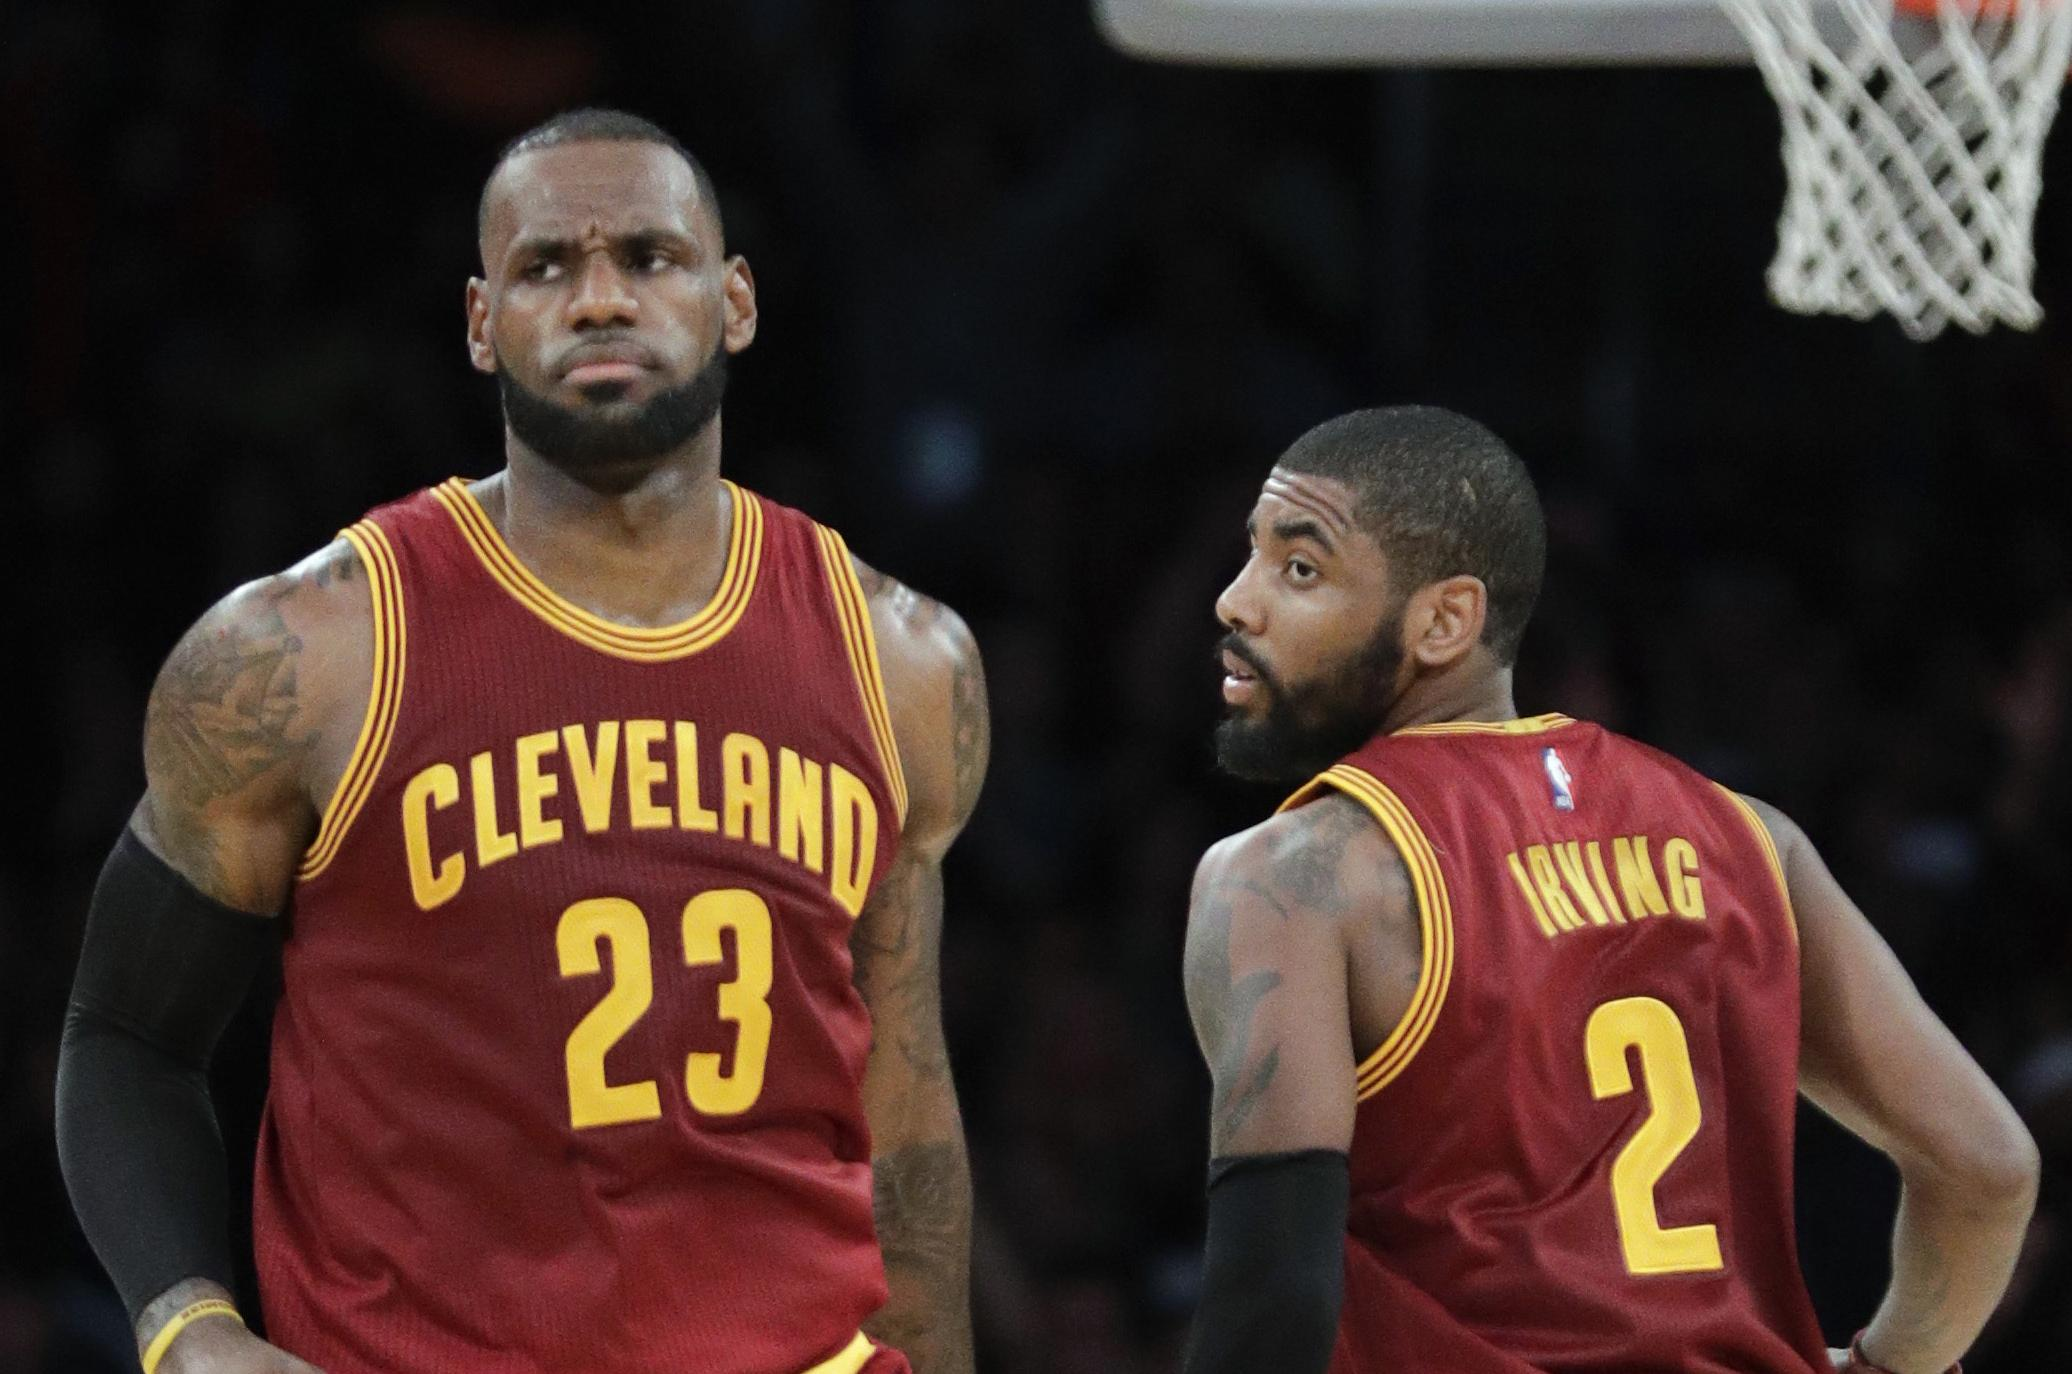 c8dc4e13933a LeBron James vs. Kyrie Irving the latest entry in NBA rivalries ...